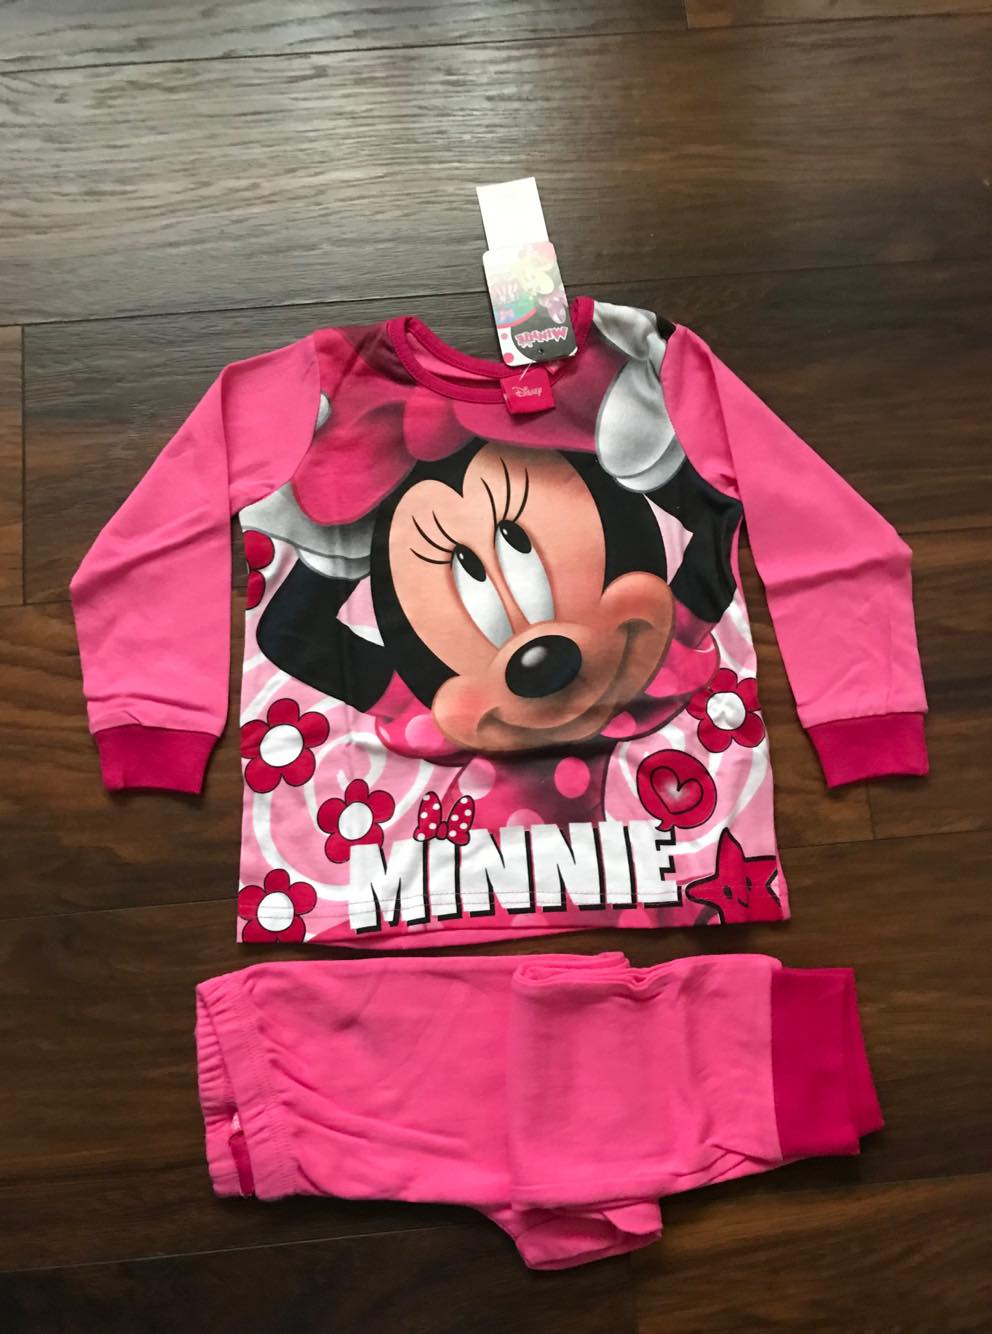 Pyžamo MINNIE  vel.104,110,116,128